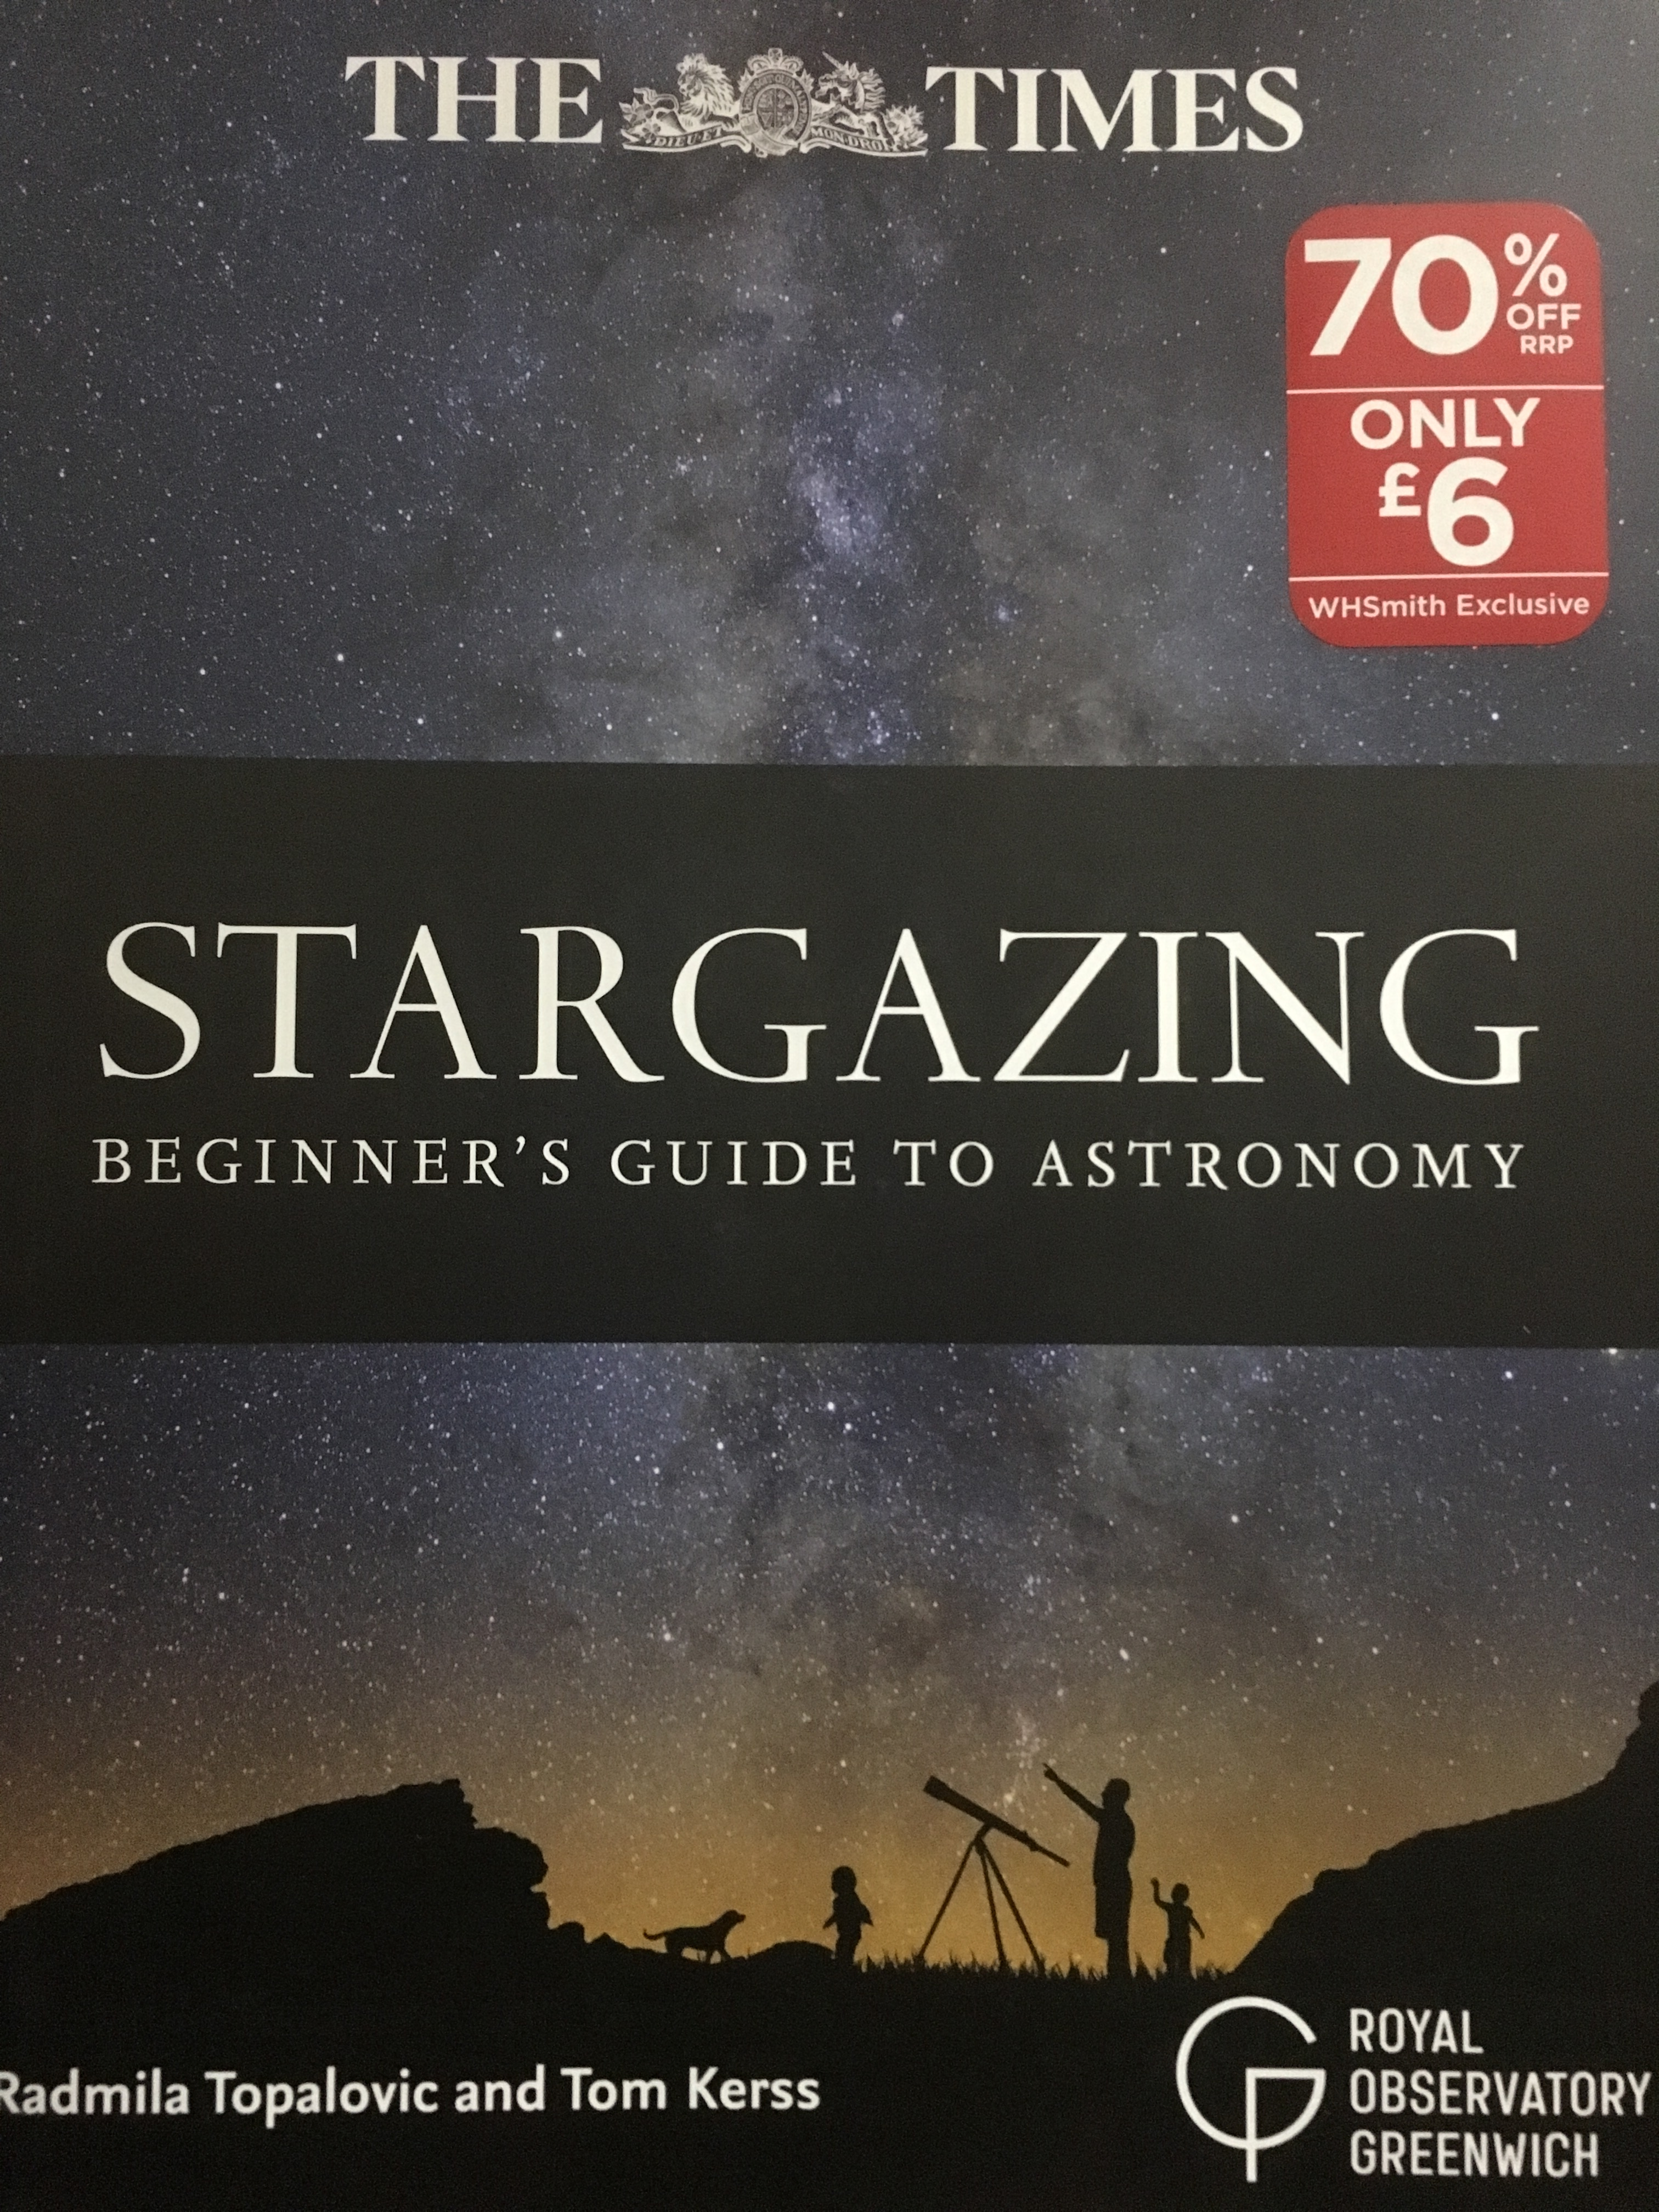 the times stargazing beginner s guide to astronomy getting started rh stargazerslounge com beginners guide to stargazing dk collins stargazing beginners guide to astronomy